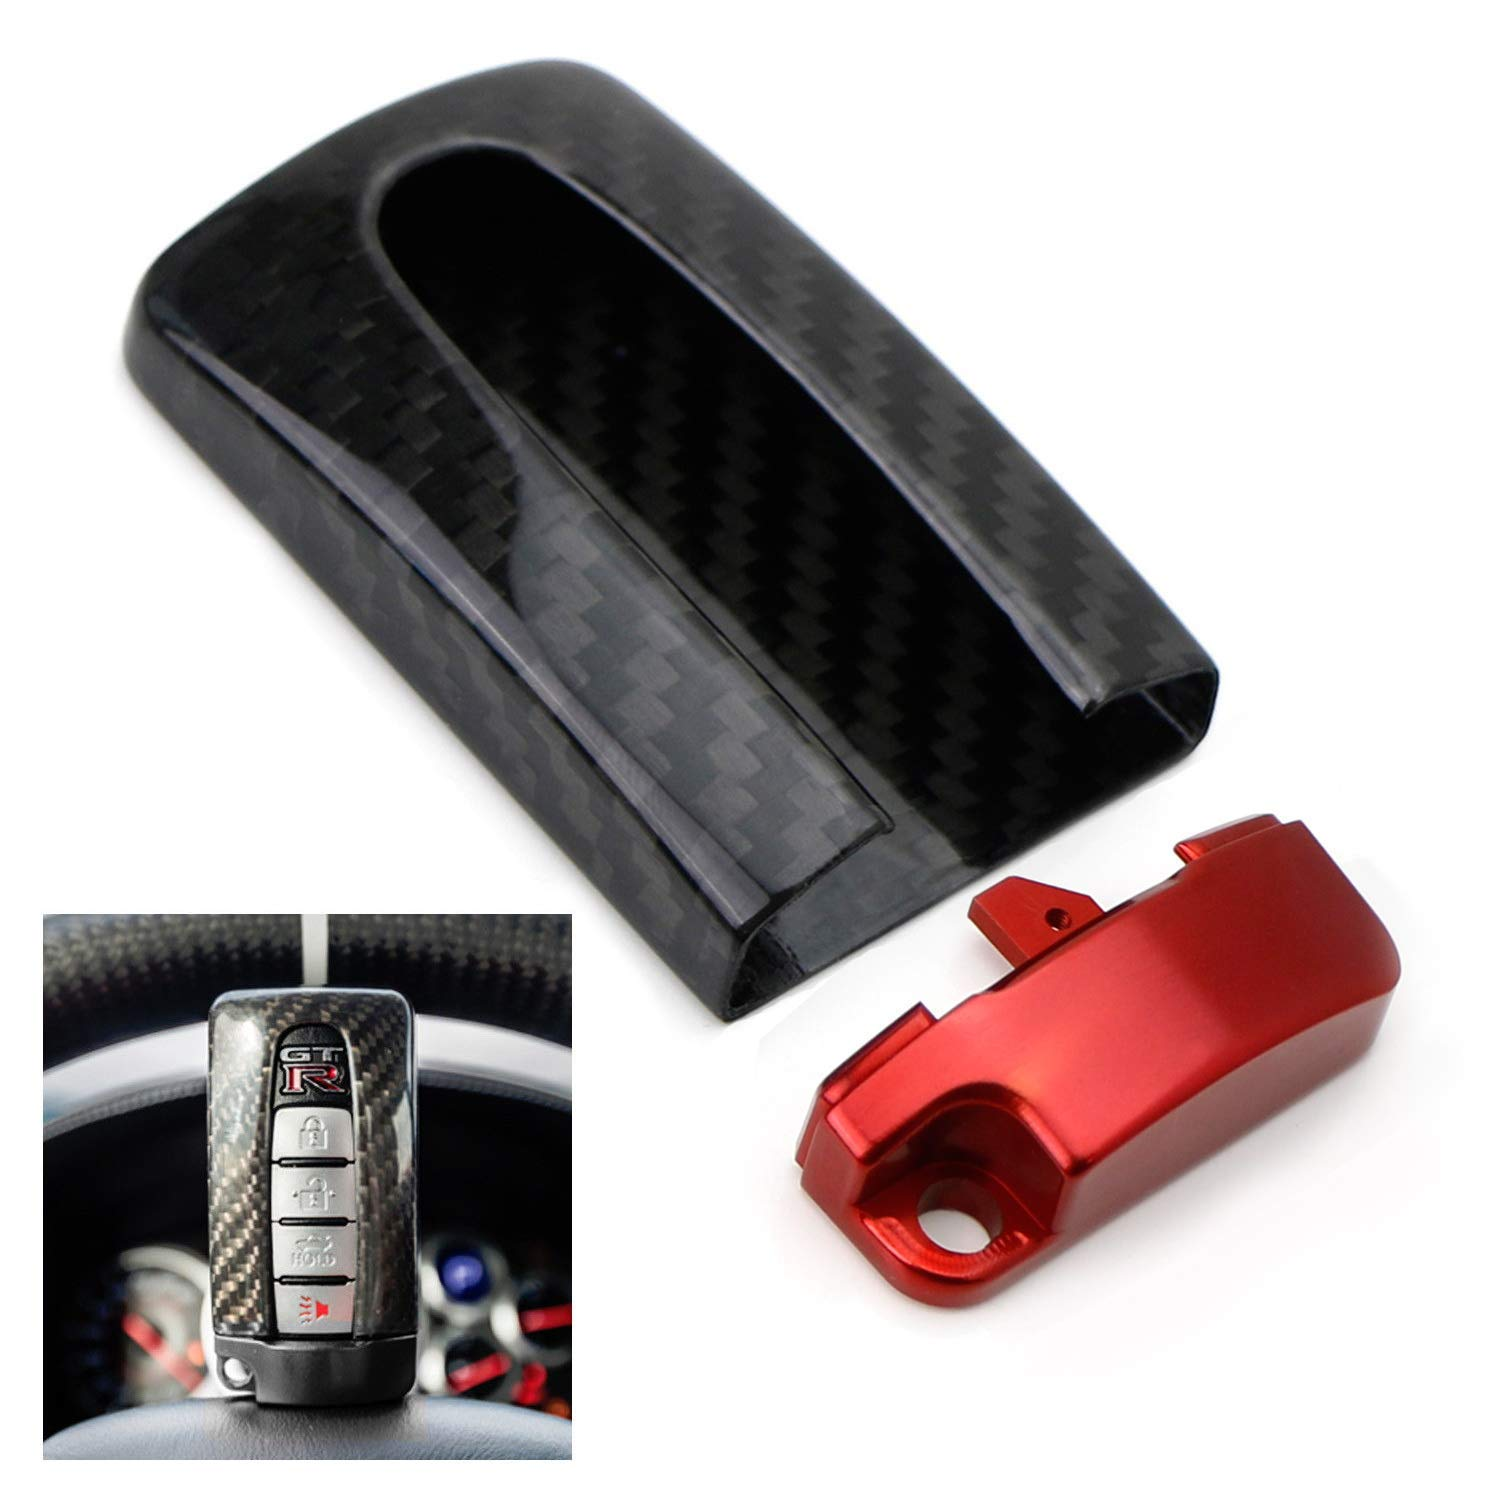 iJDMTOY (1) Real Carbon Fiber GTR Style Key Fob Protective Cover Case w/Red Base For Nissan or Infiniti Oval Shape Keyless Entry Remote